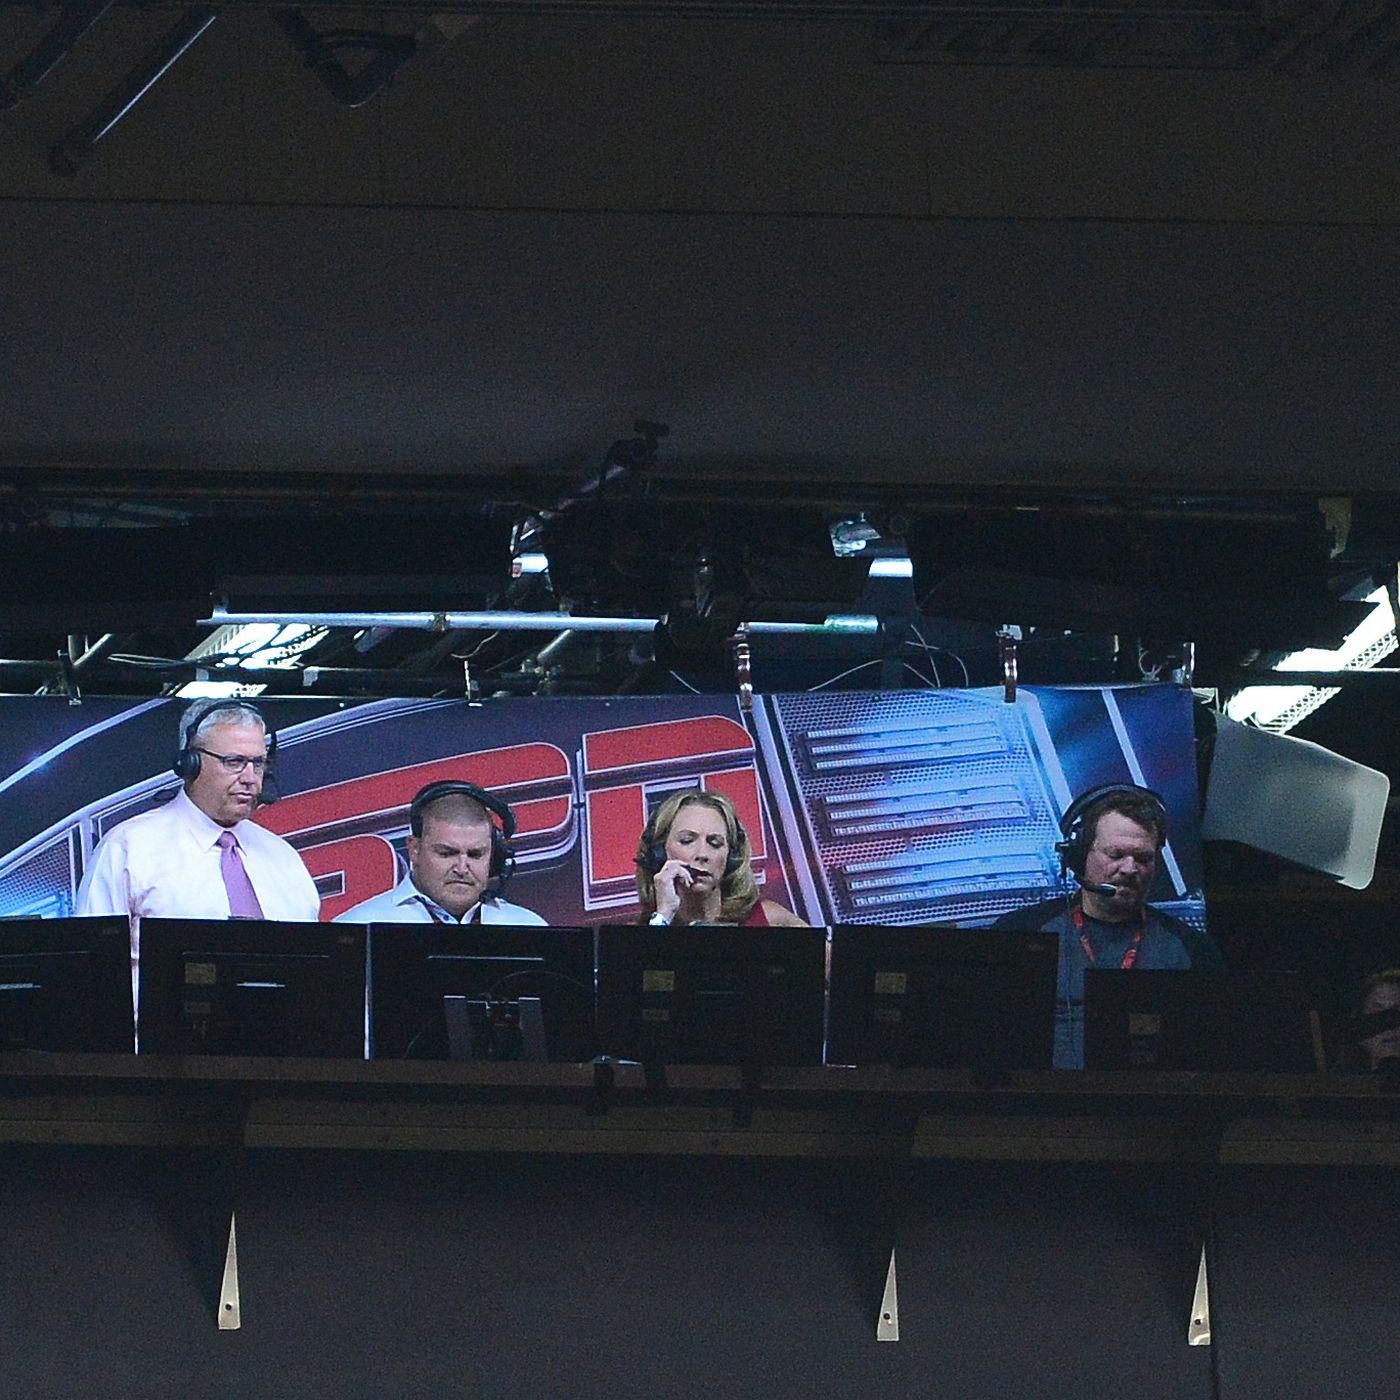 Wayback Machine Sideline Photo Fun When >> Lions Jets Week 1 Announcers Broadcast Team For Monday Night